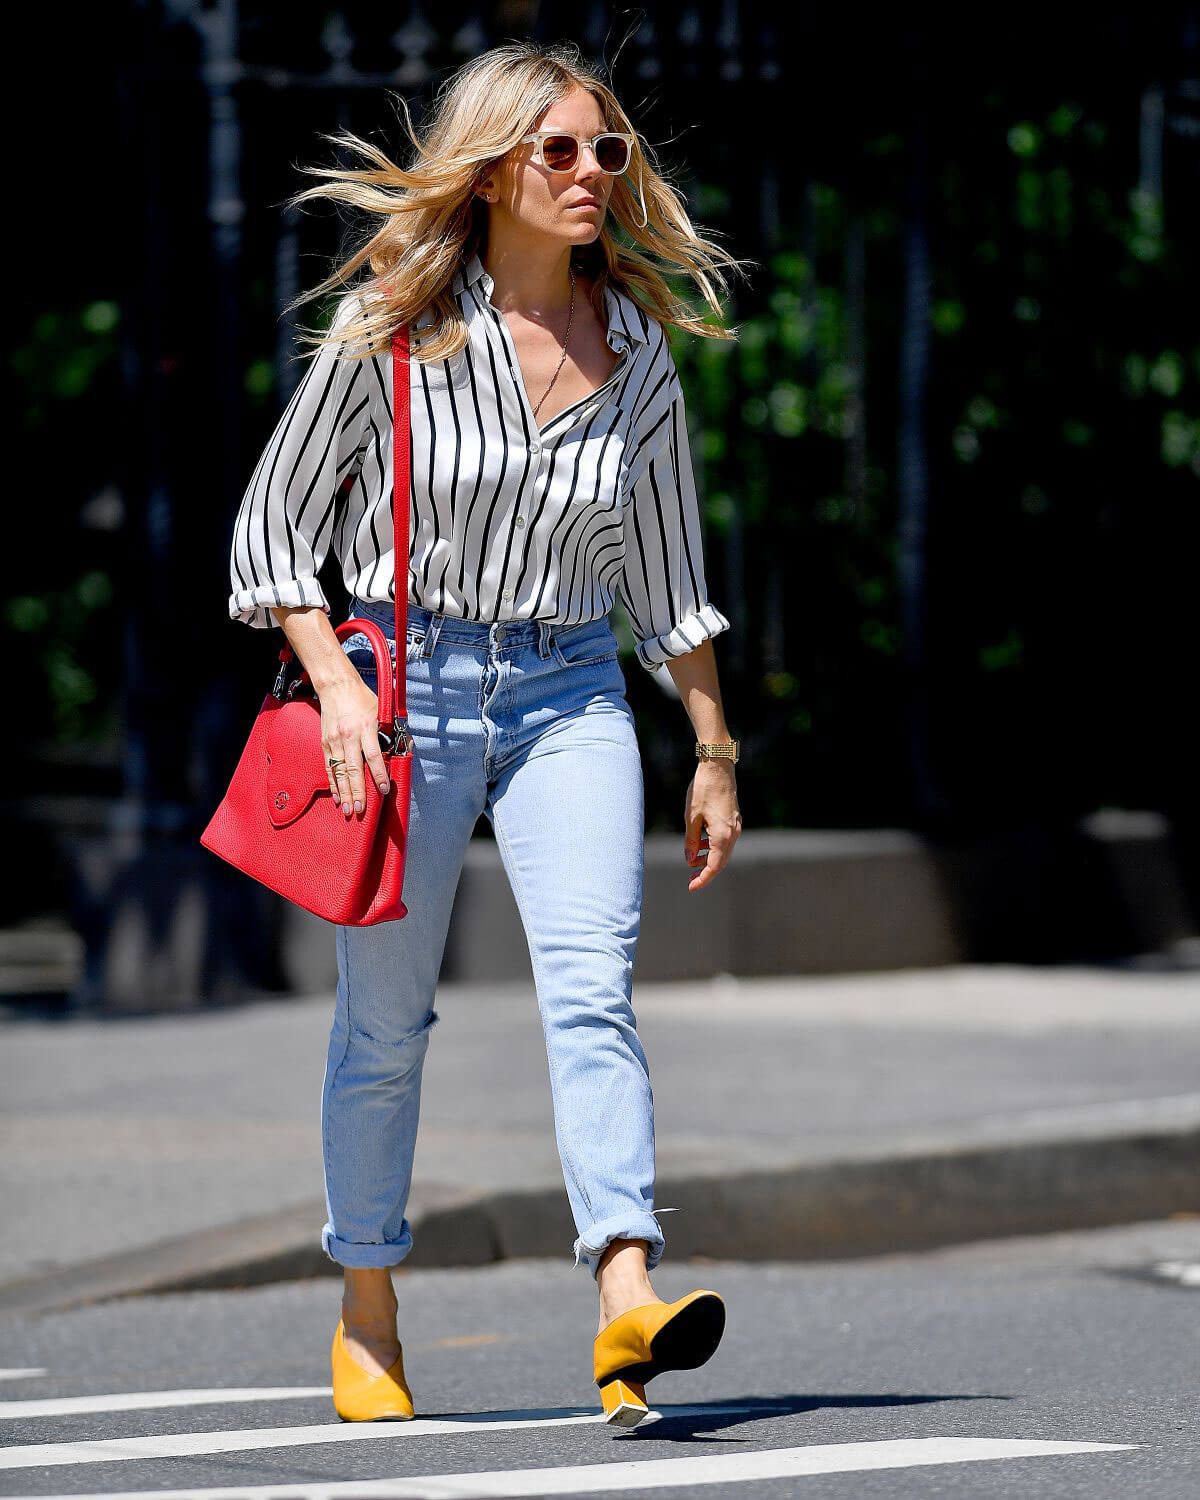 324234 Sienna In Out Celebskart New 20180523 Jeans Miller York WEHI92DY